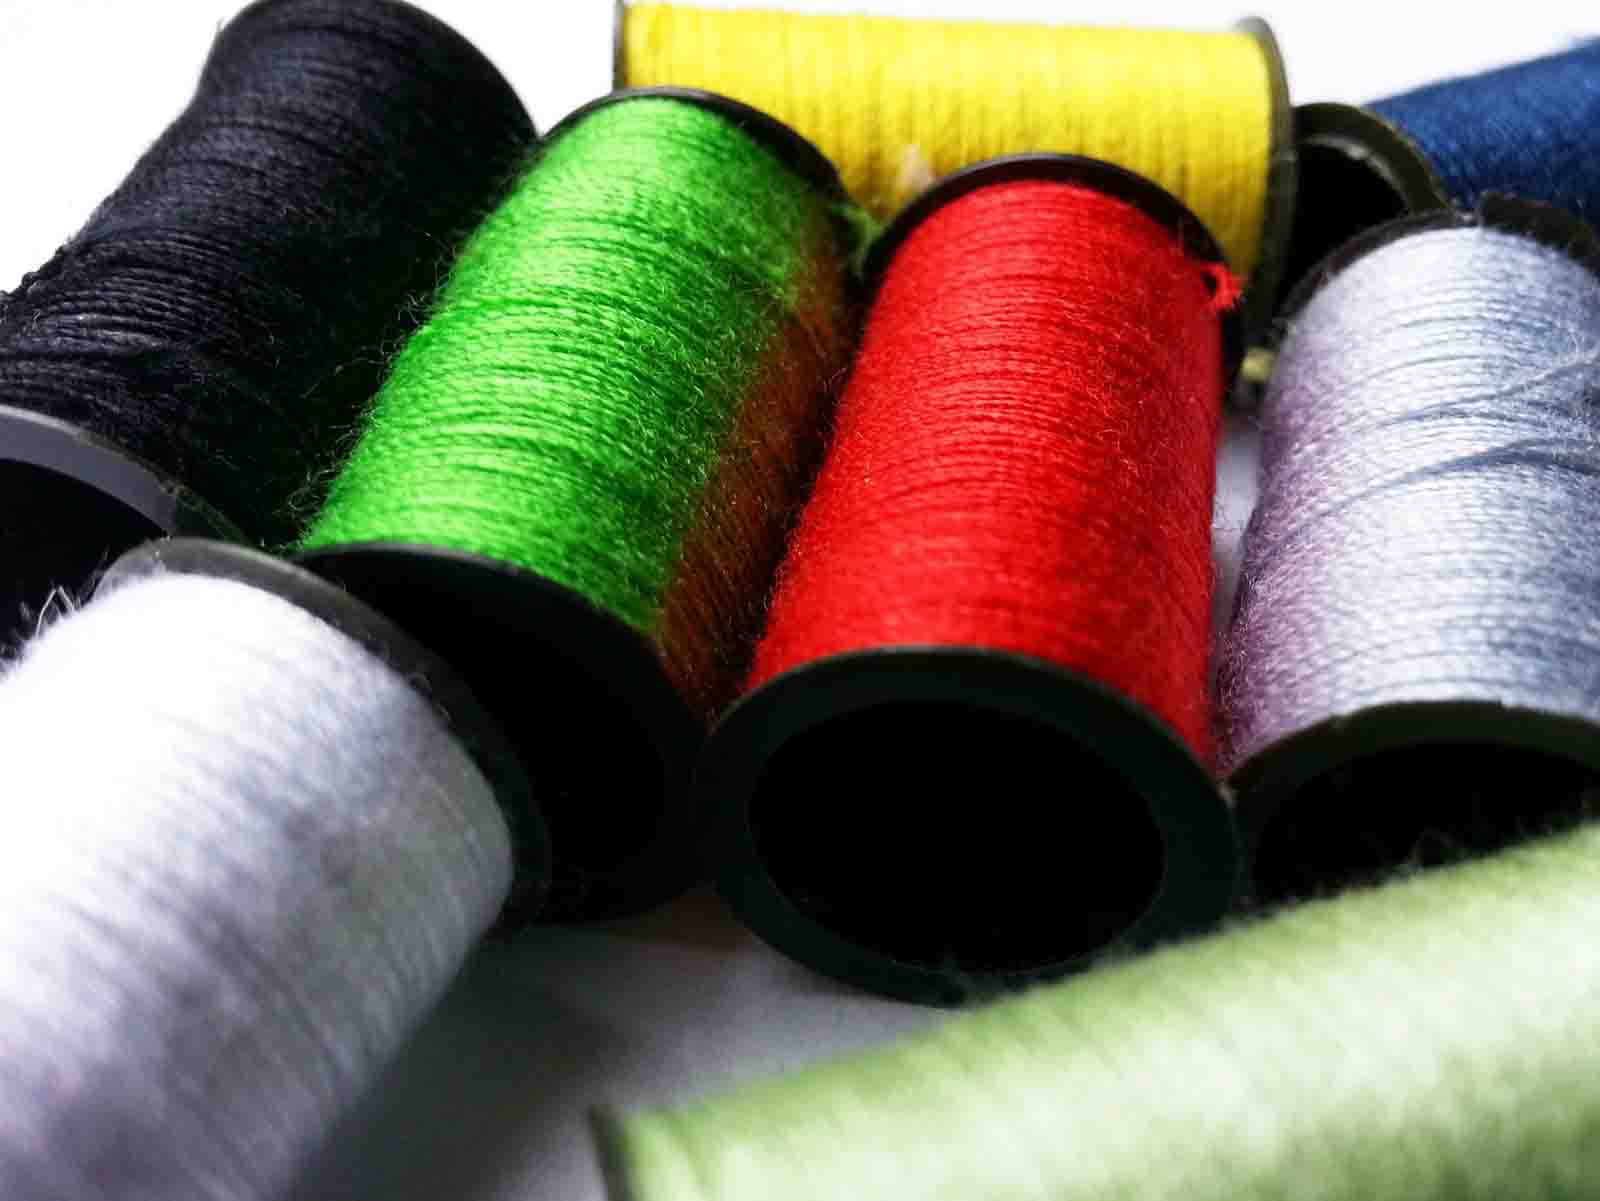 Making Time to Craft Colored Spools